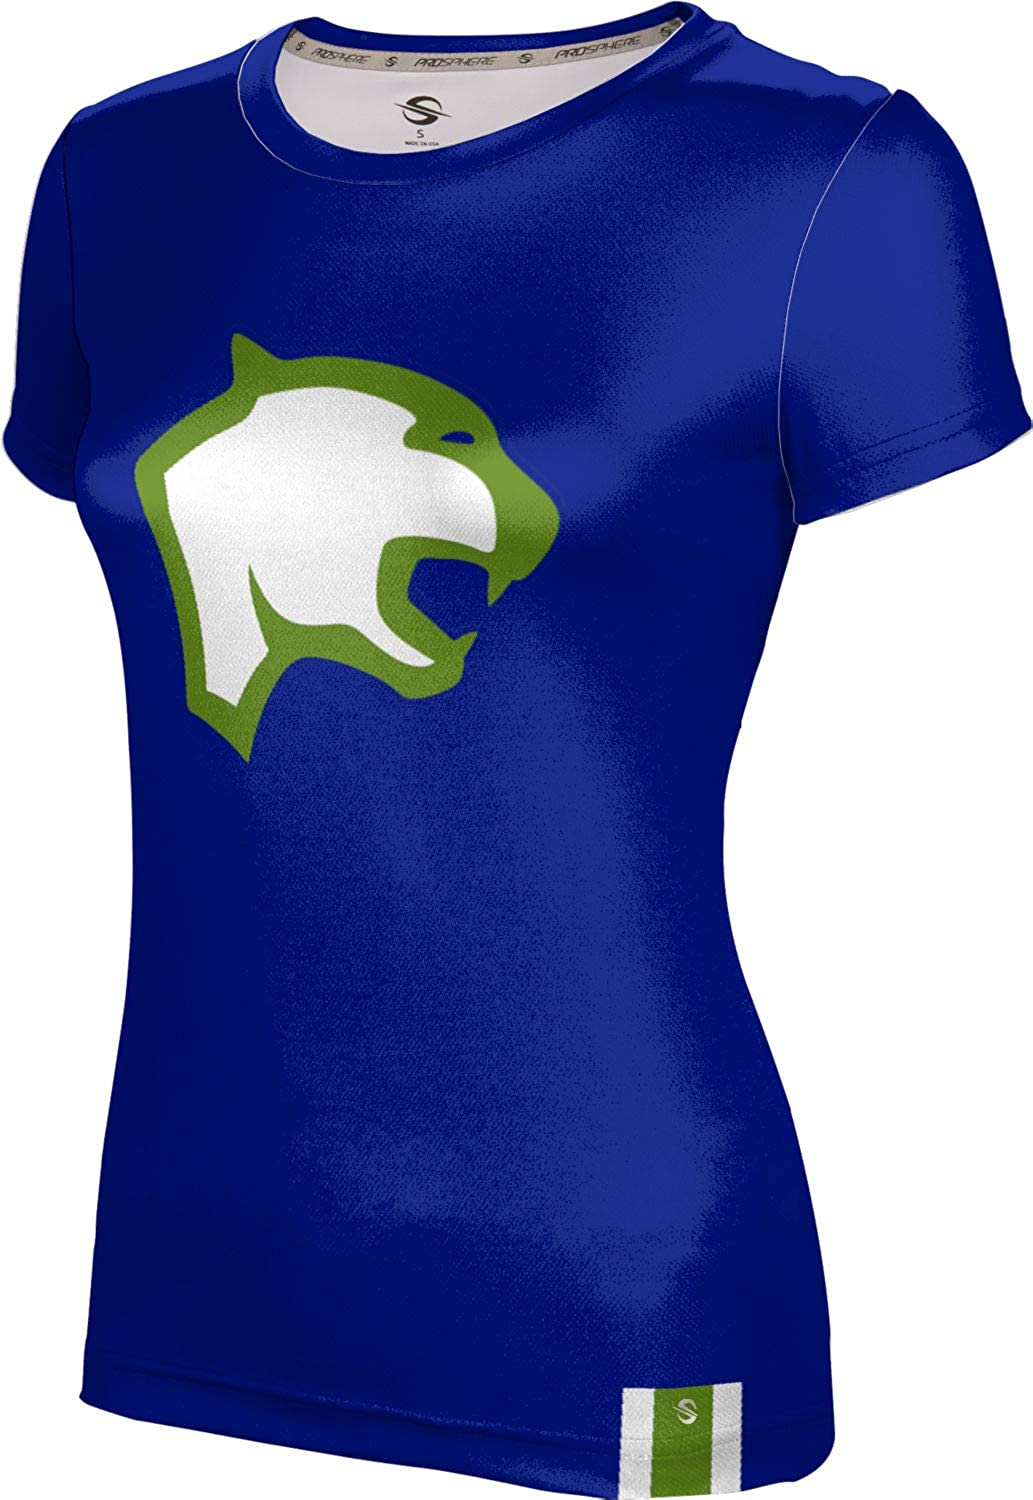 ProSphere Chaparral High School Girls' Performance T-Shirt (Solid)